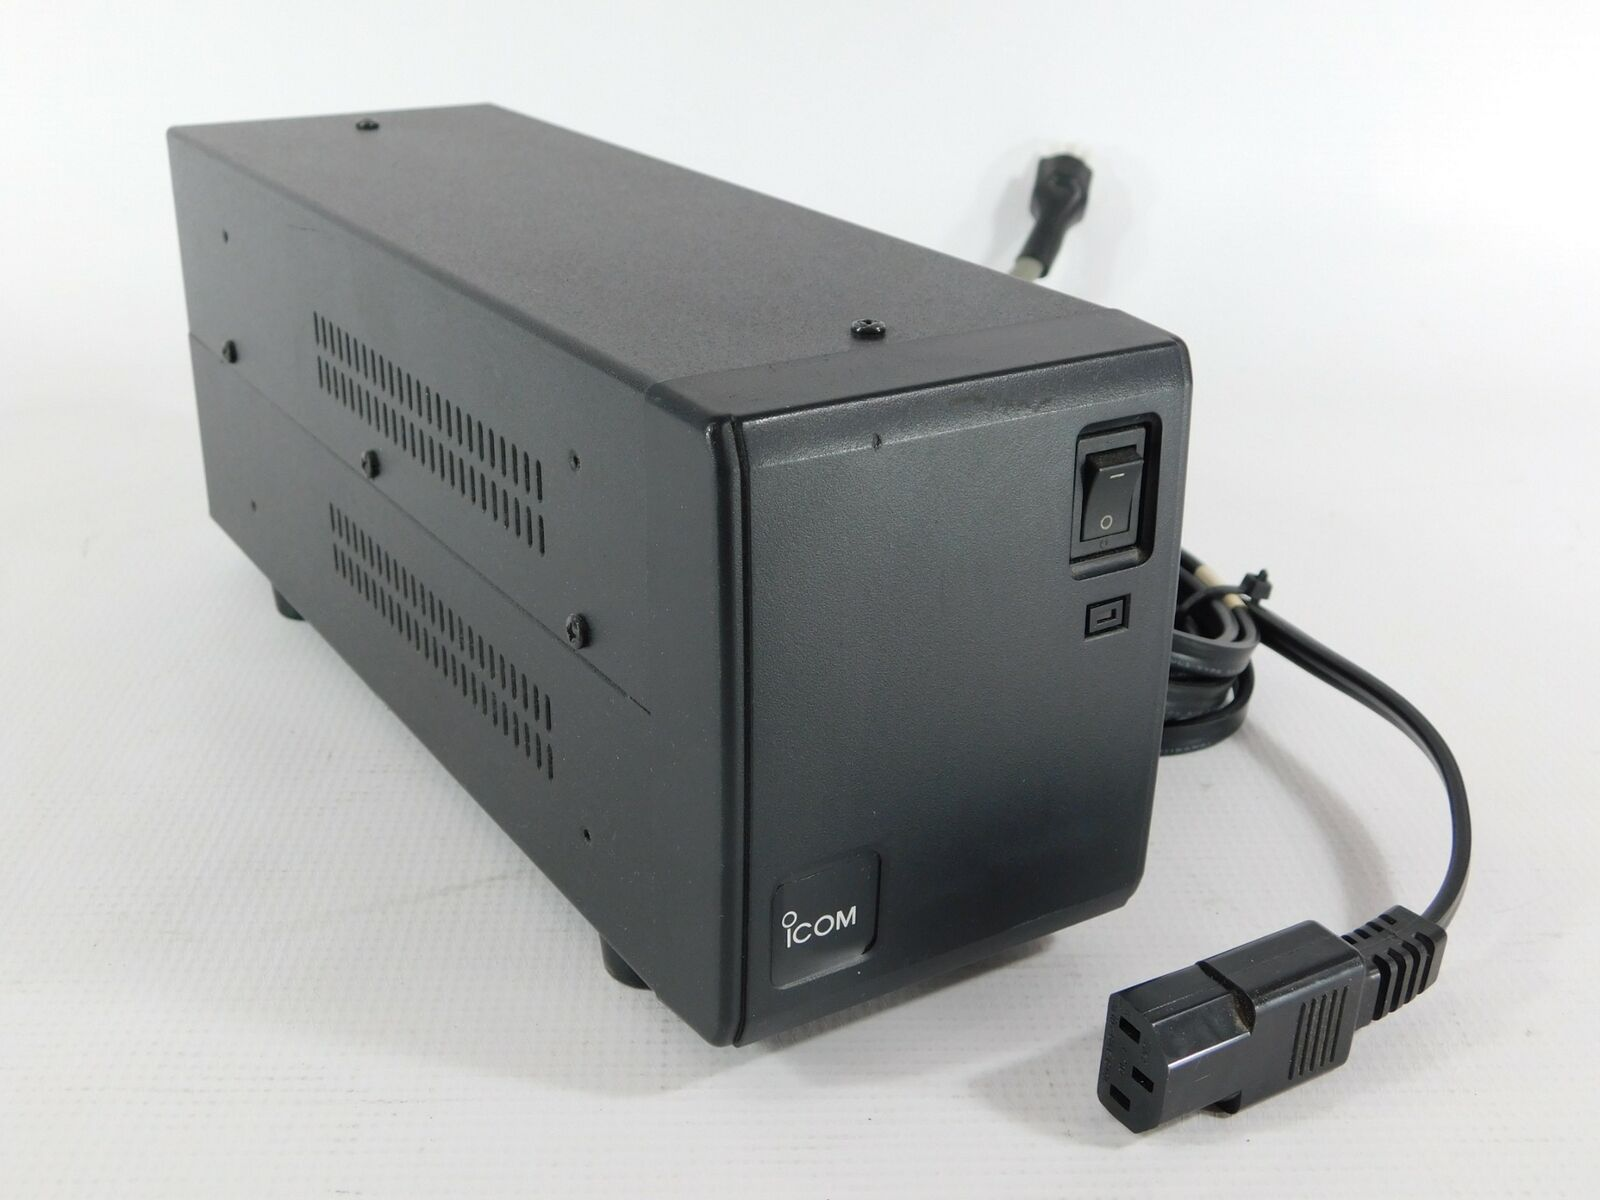 Icom PS-125 Ham Radio 13.8V 25A Power Supply (good condition). Buy it now for 220.00